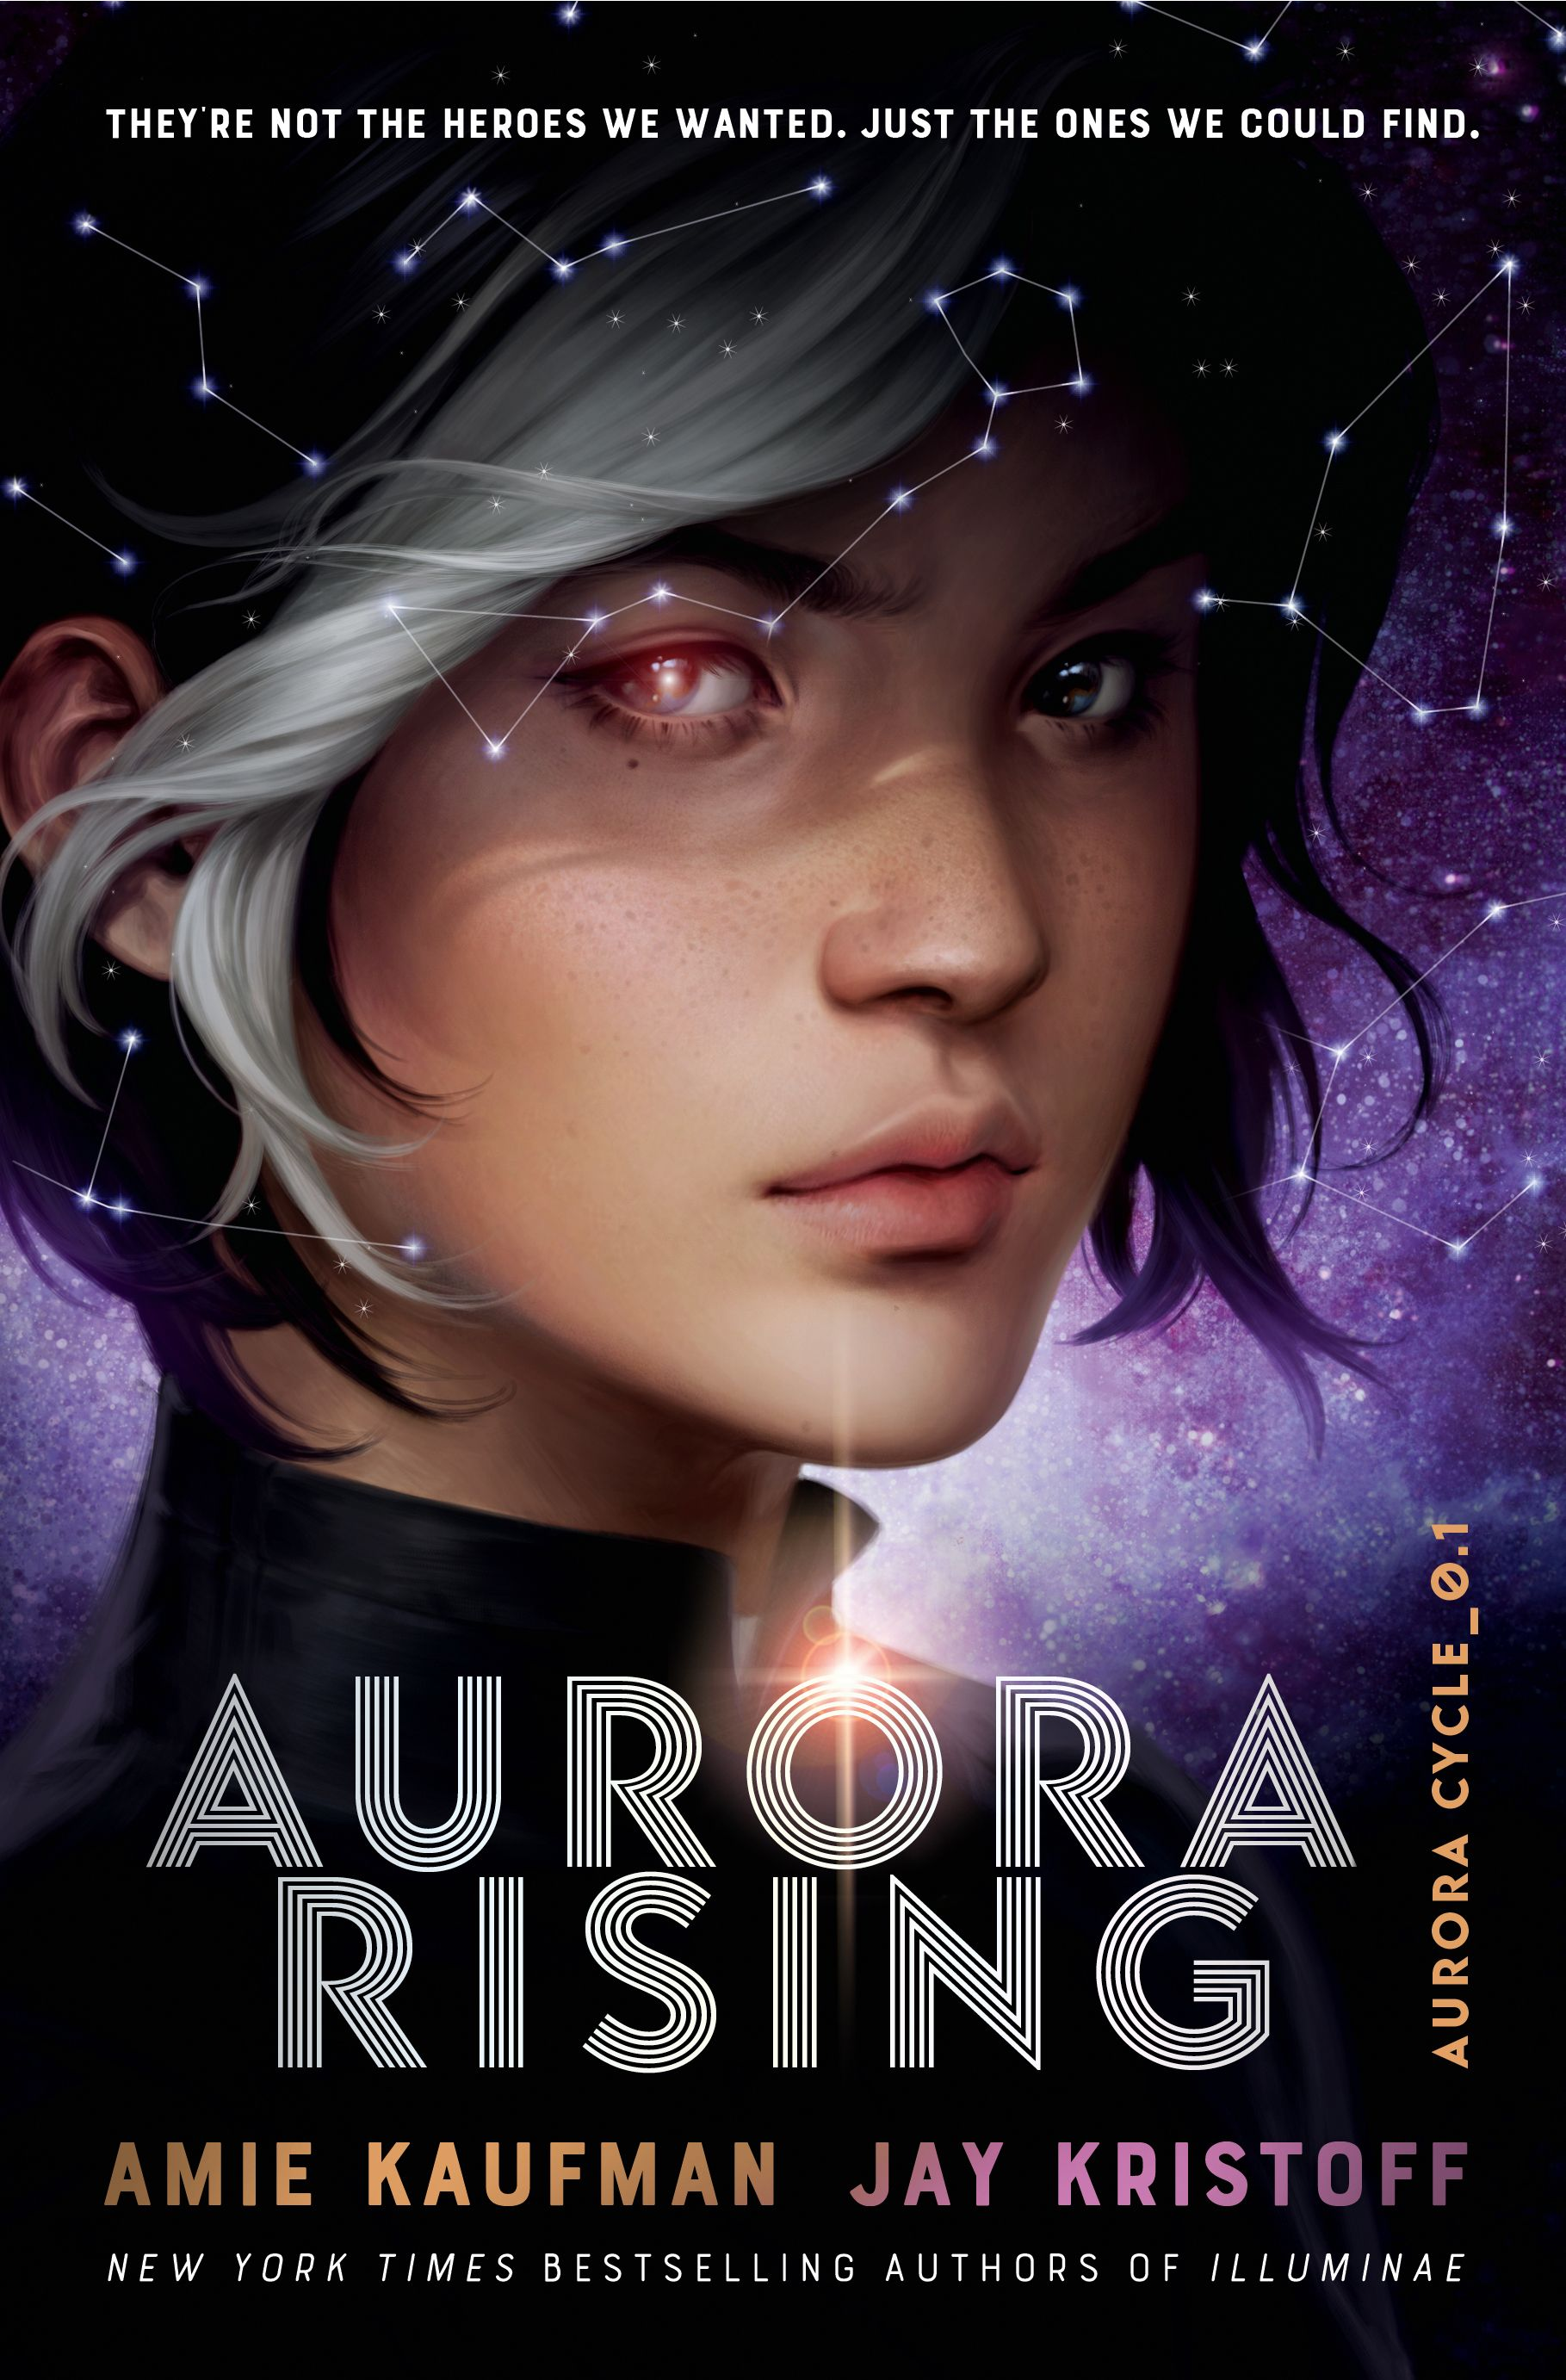 Pdf Aurora Rising By Amie Kaufman And Jay Kristoff Download